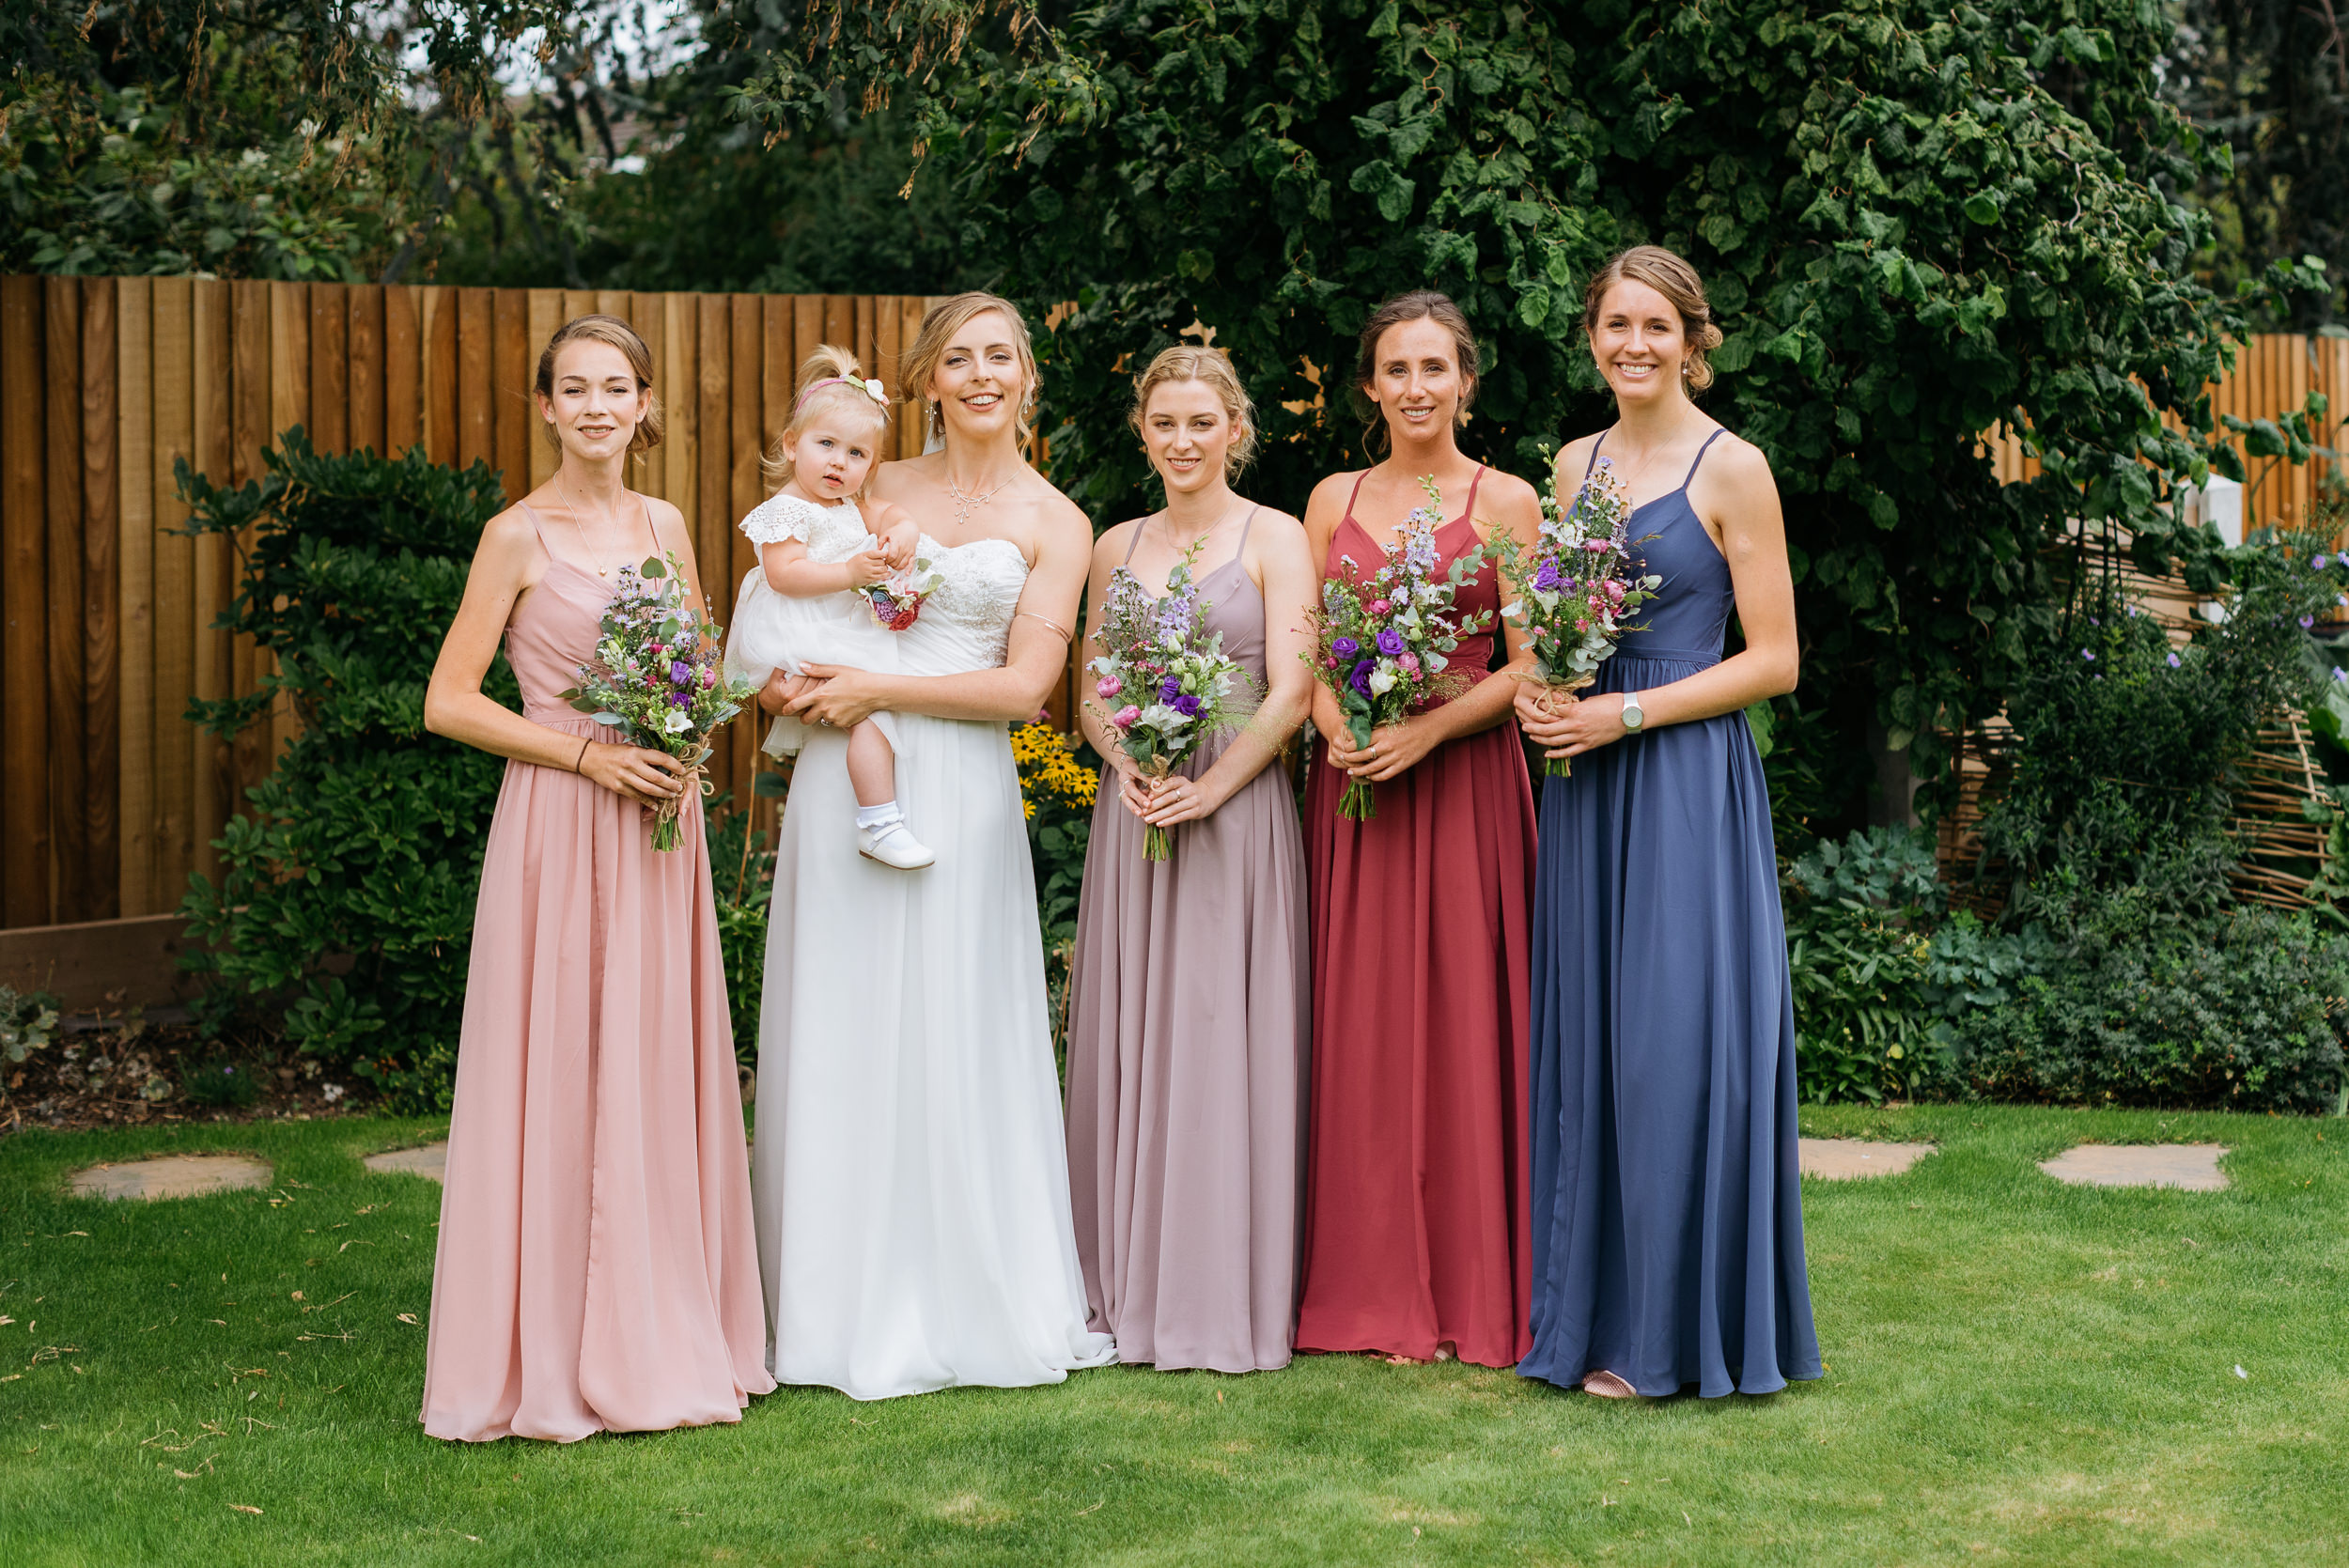 A photograph of the bride and her bridesmaids